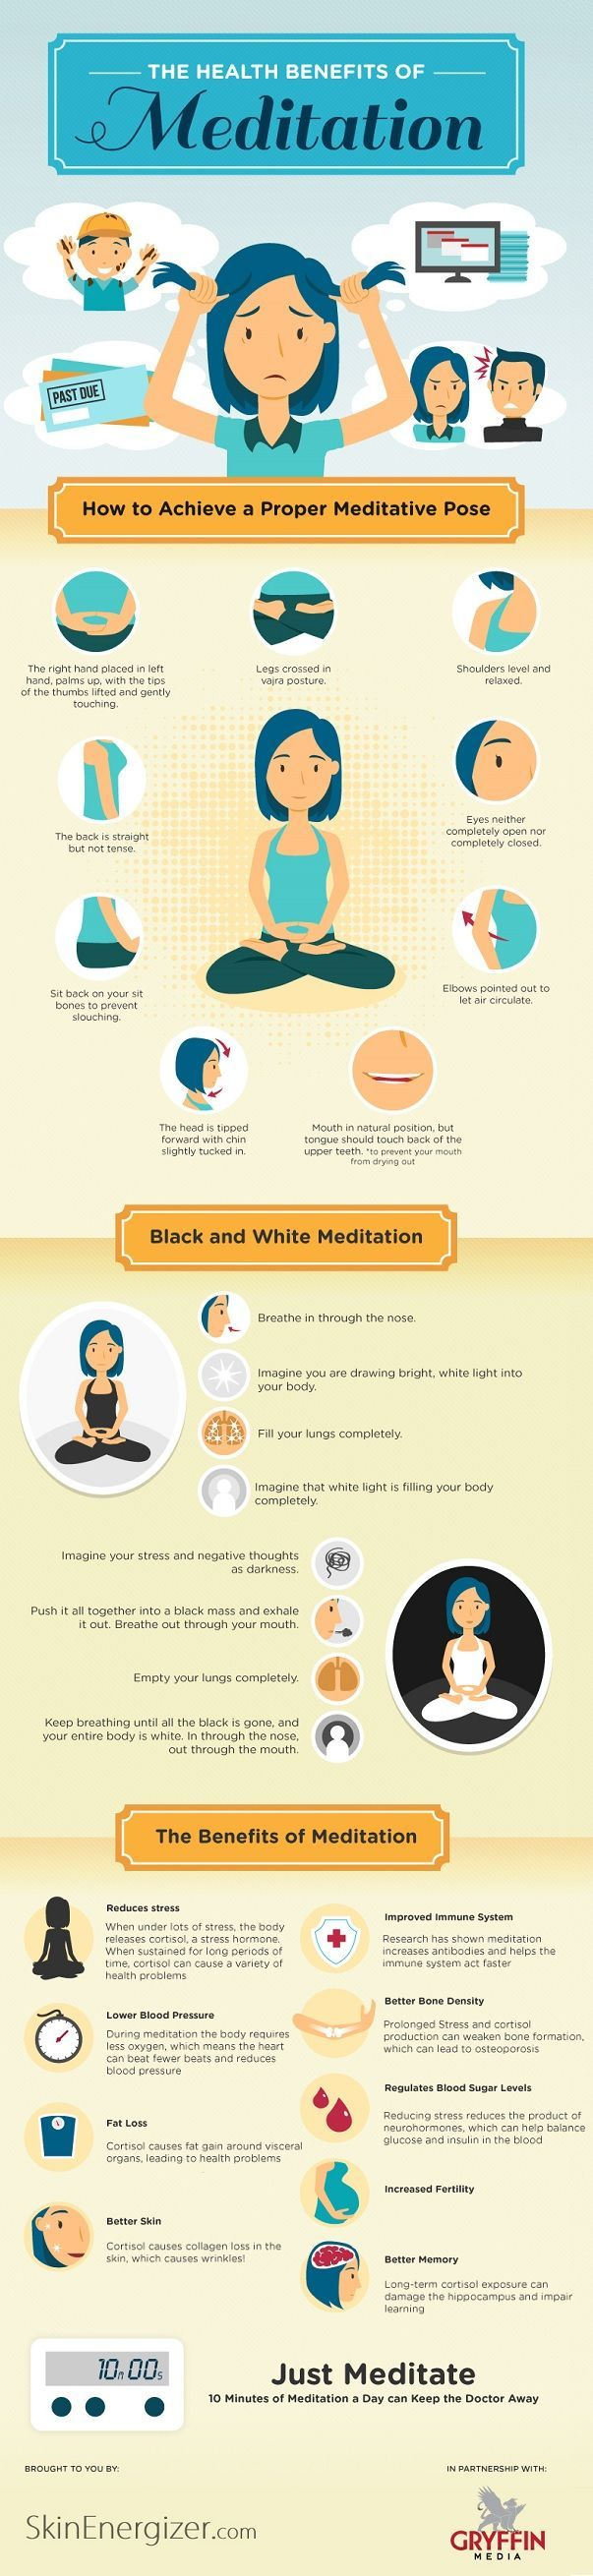 Take a breather. The Health Benefits of Meditation.